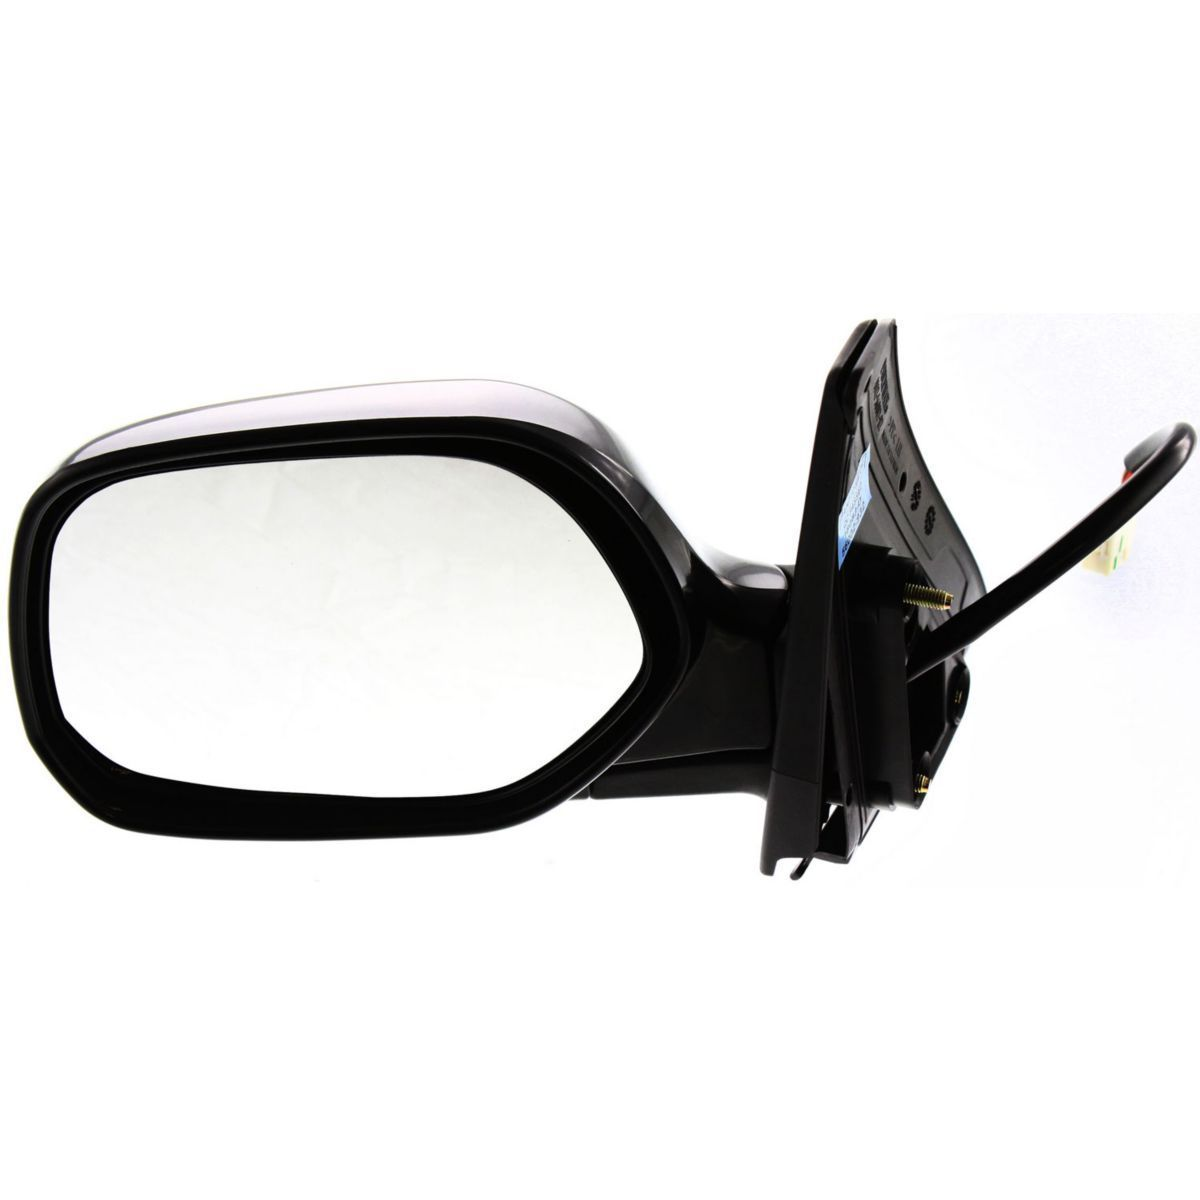 Genuine Toyota 87940-52500-A0 Rear View Mirror Assembly